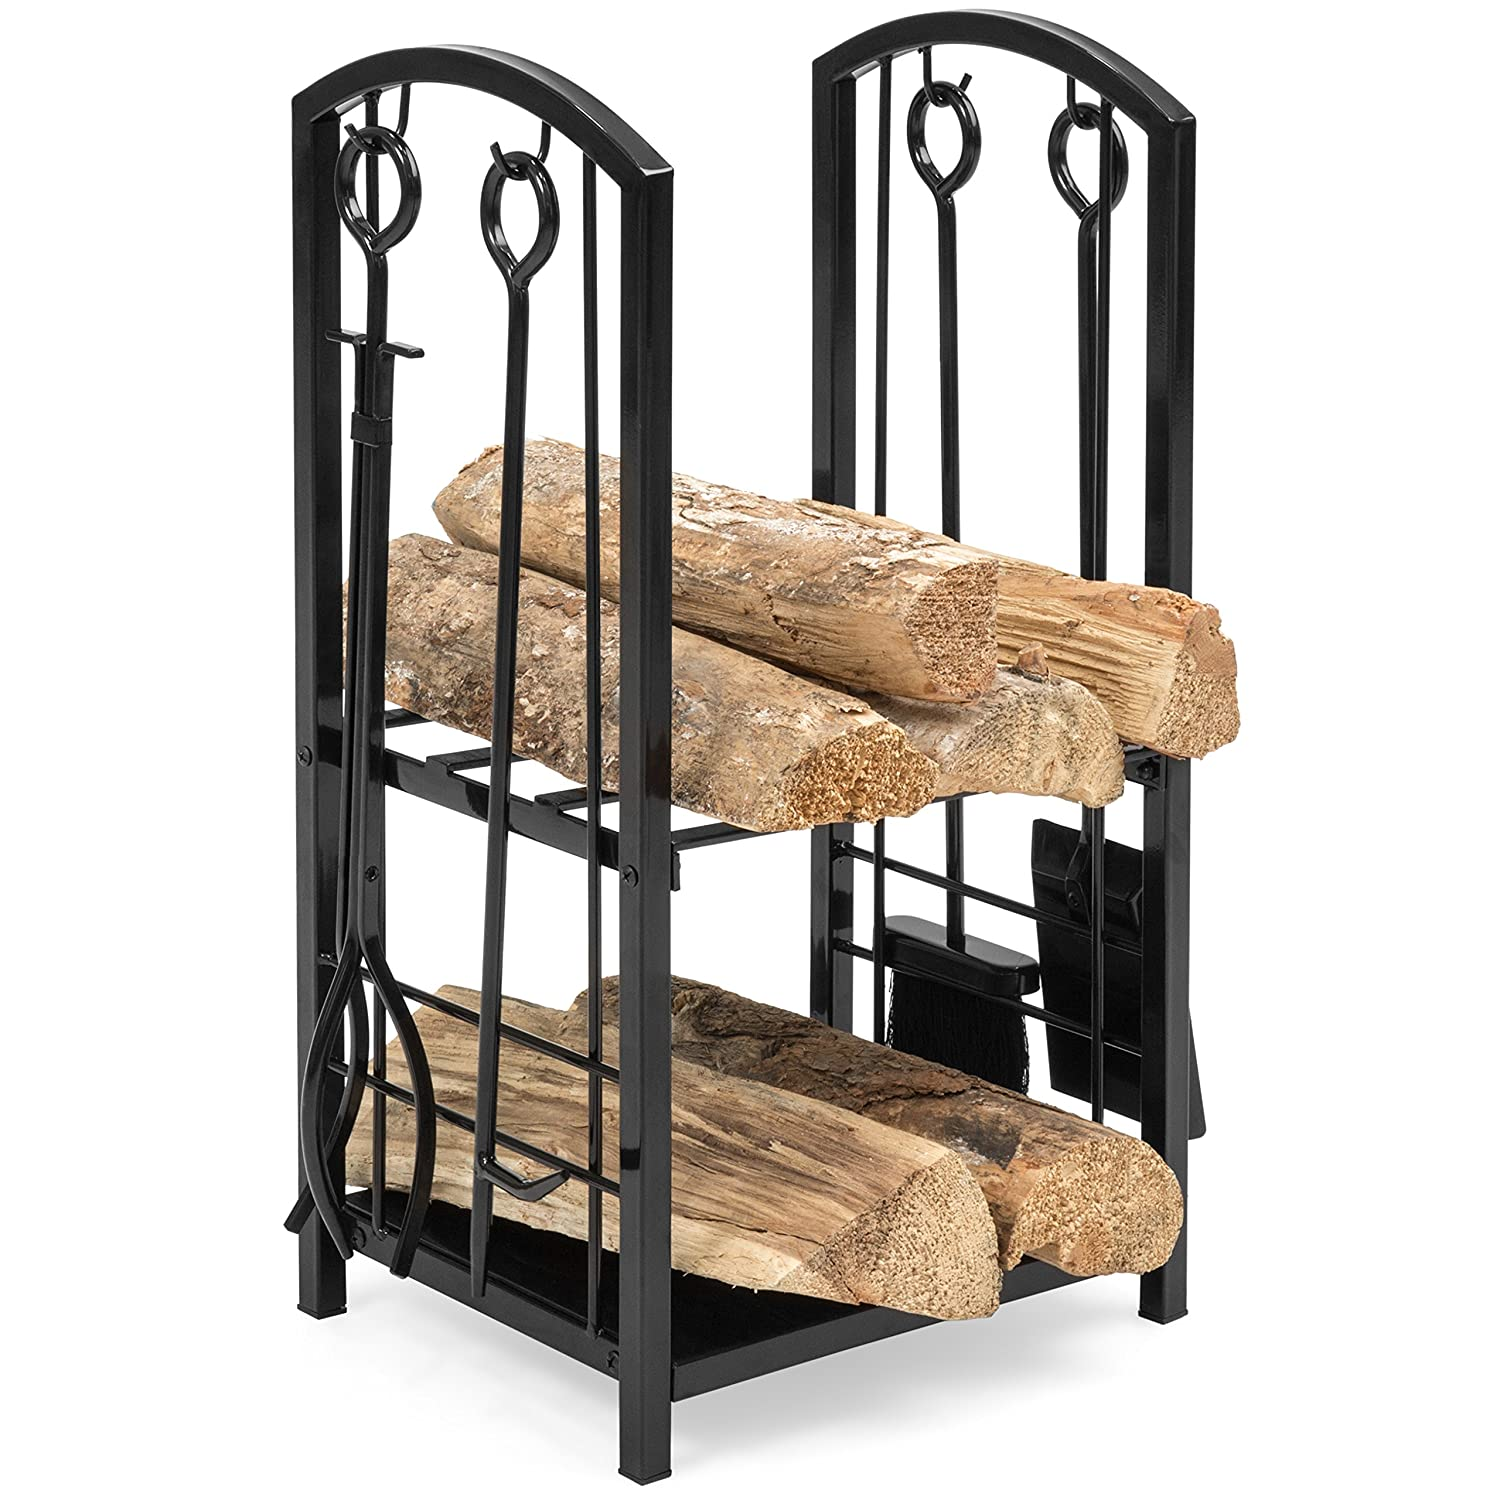 Best Choice Products Indoor Outdoor Stackable Firewood Log Rack Holder Storage Set w/Hook, Broom, Shovel, Tong - Black